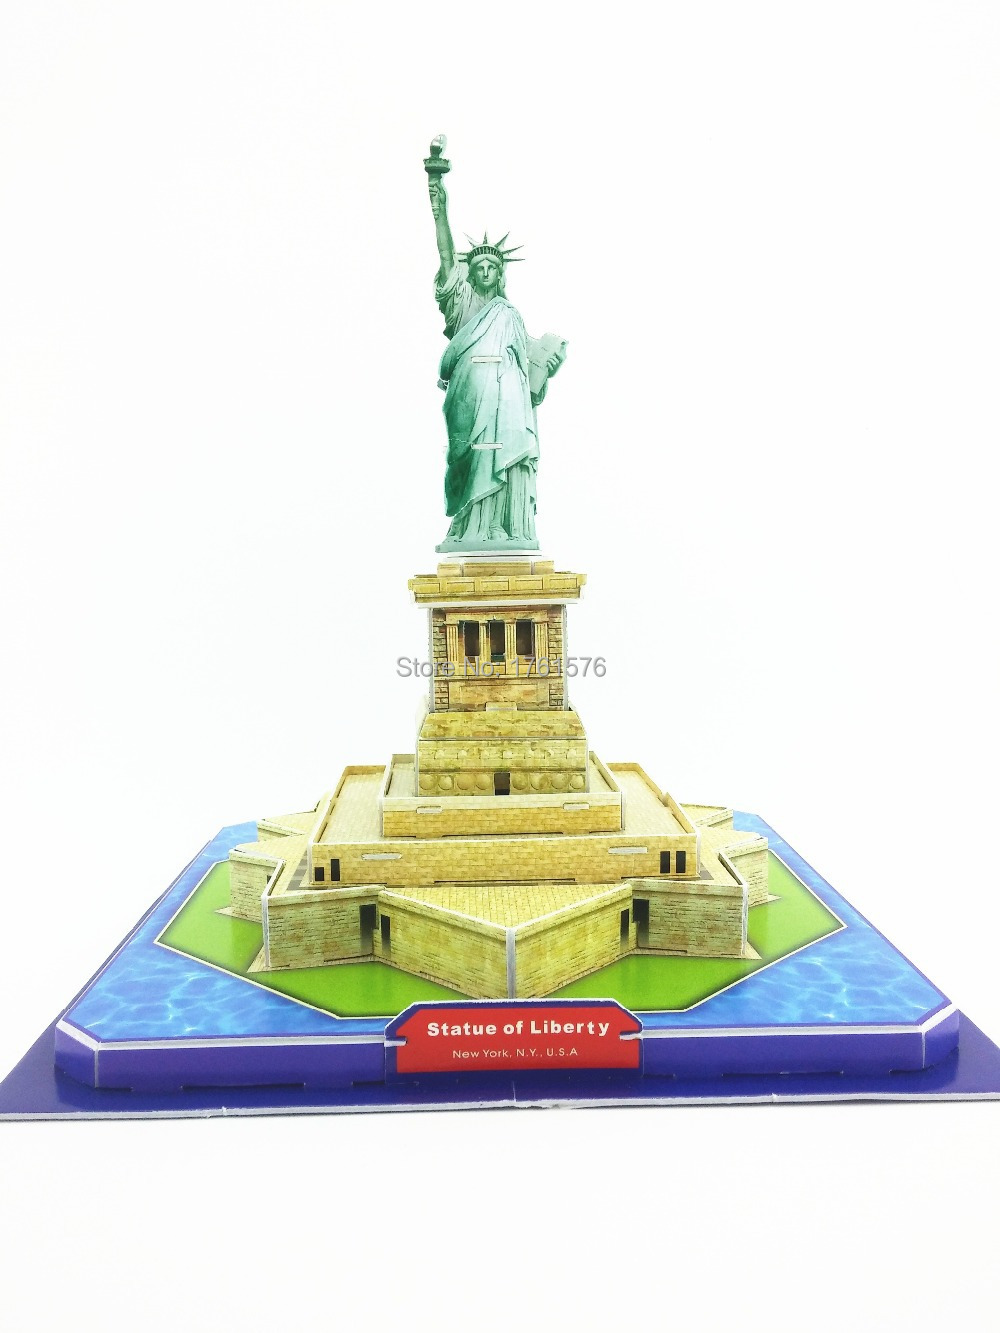 Coolest Statue of Liberty 3D Puzzle Jigsaw DIY 26*26*23cm Educational Baby Shower Kid Toys Party Favor Gift FREE SHIPPING 2801B(China (Mainland))